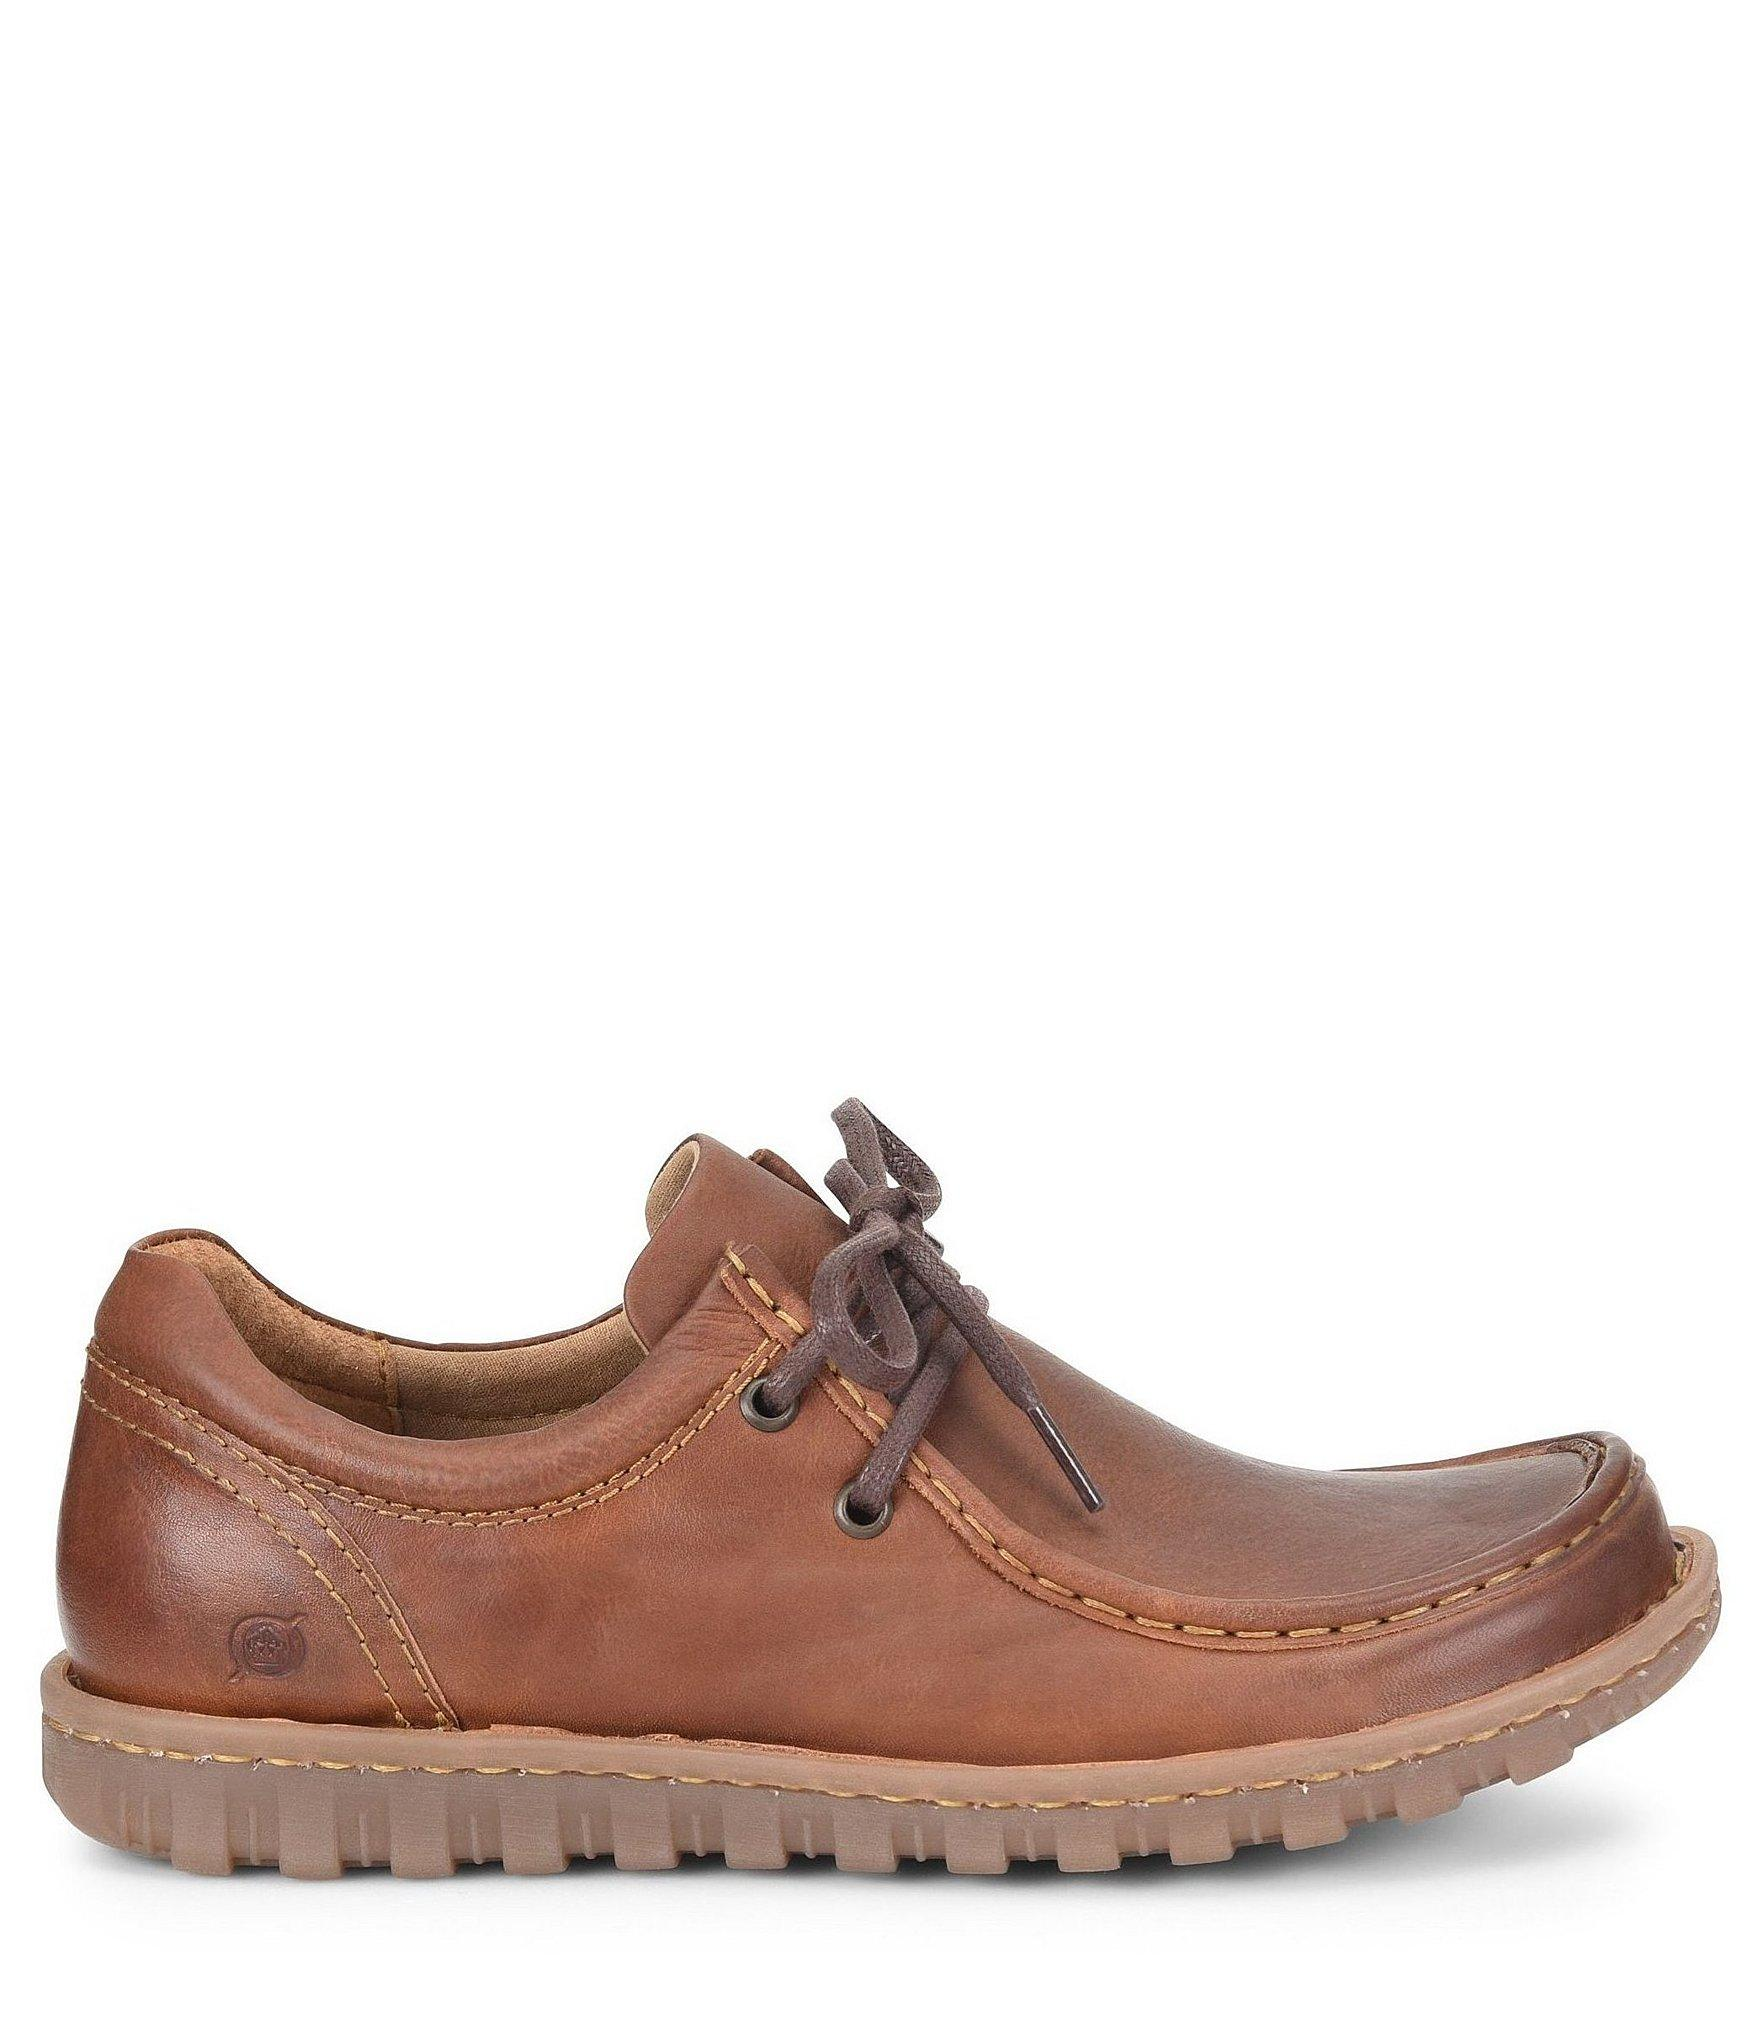 8a525c3ba112 Lyst - Born Men s Gunnison Leather Oxford in Brown for Men